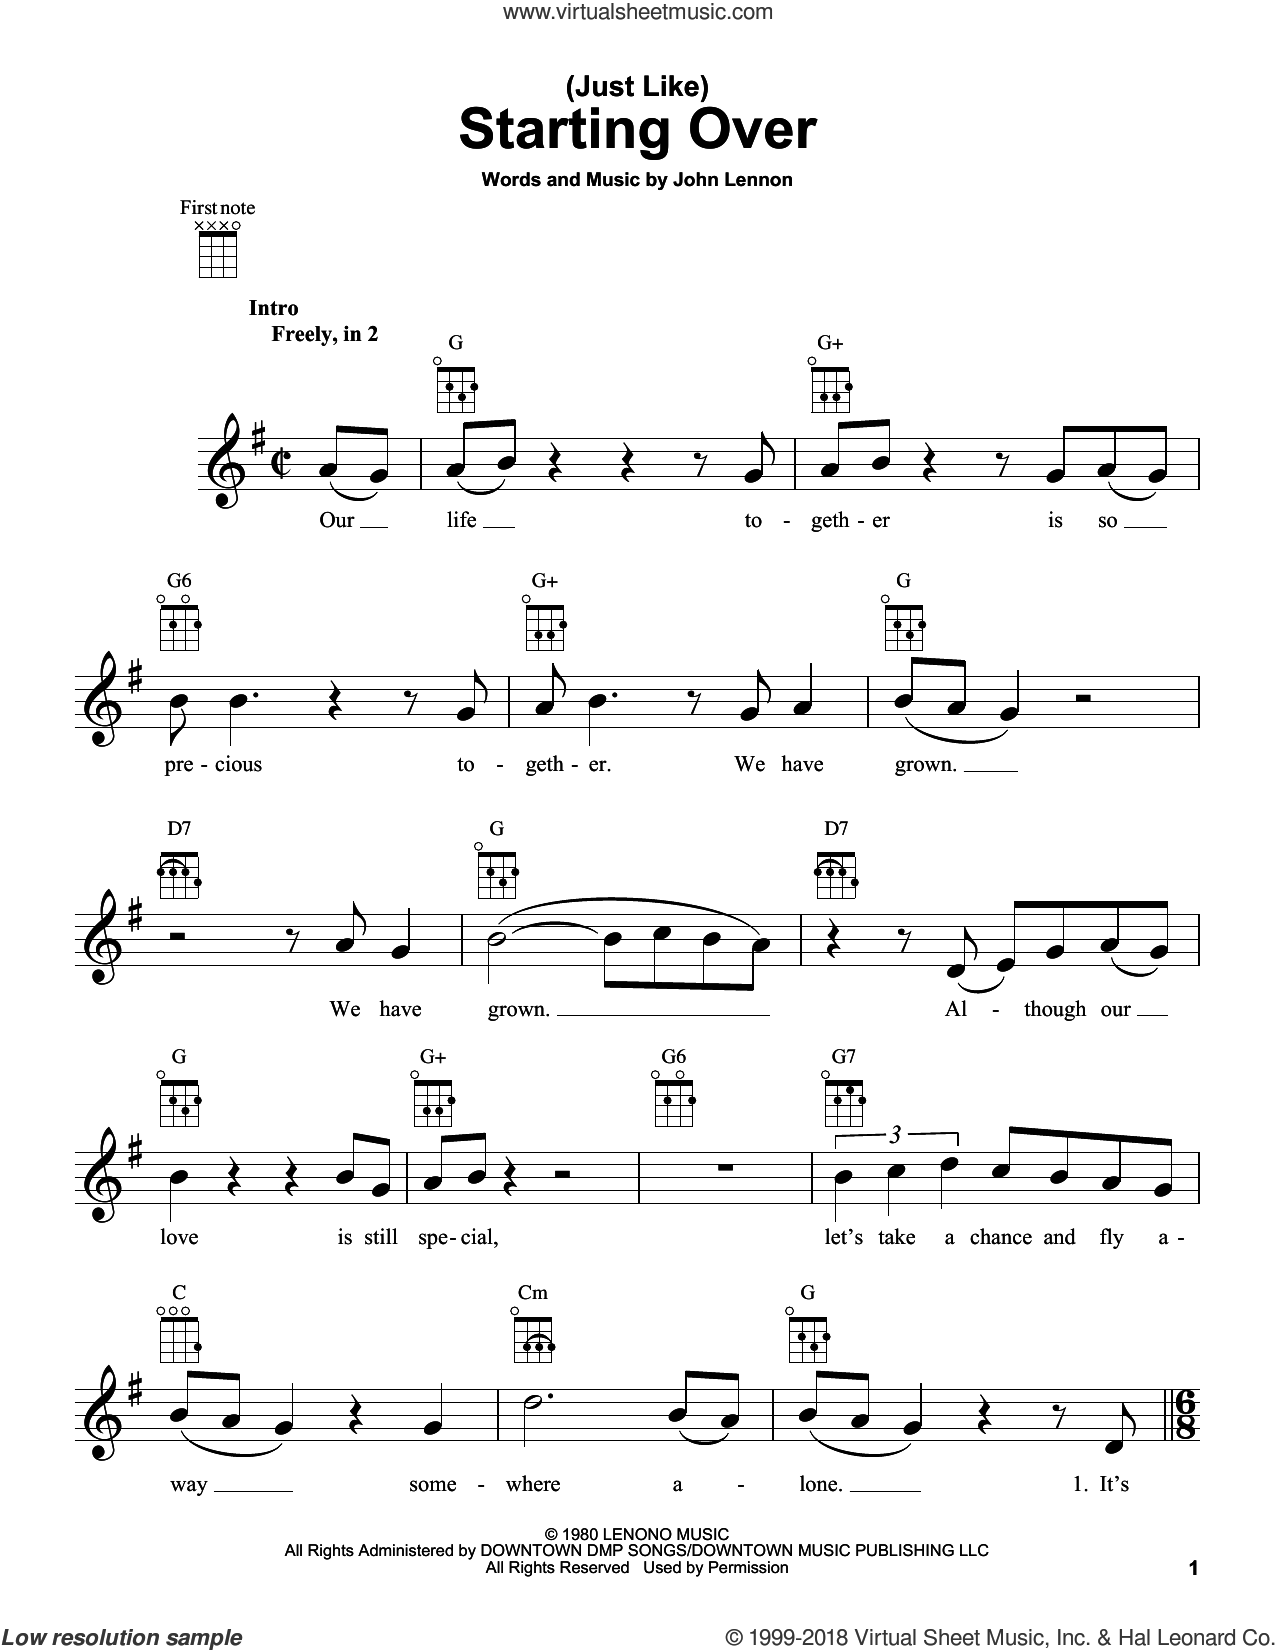 (Just Like) Starting Over sheet music for ukulele by John Lennon, intermediate skill level